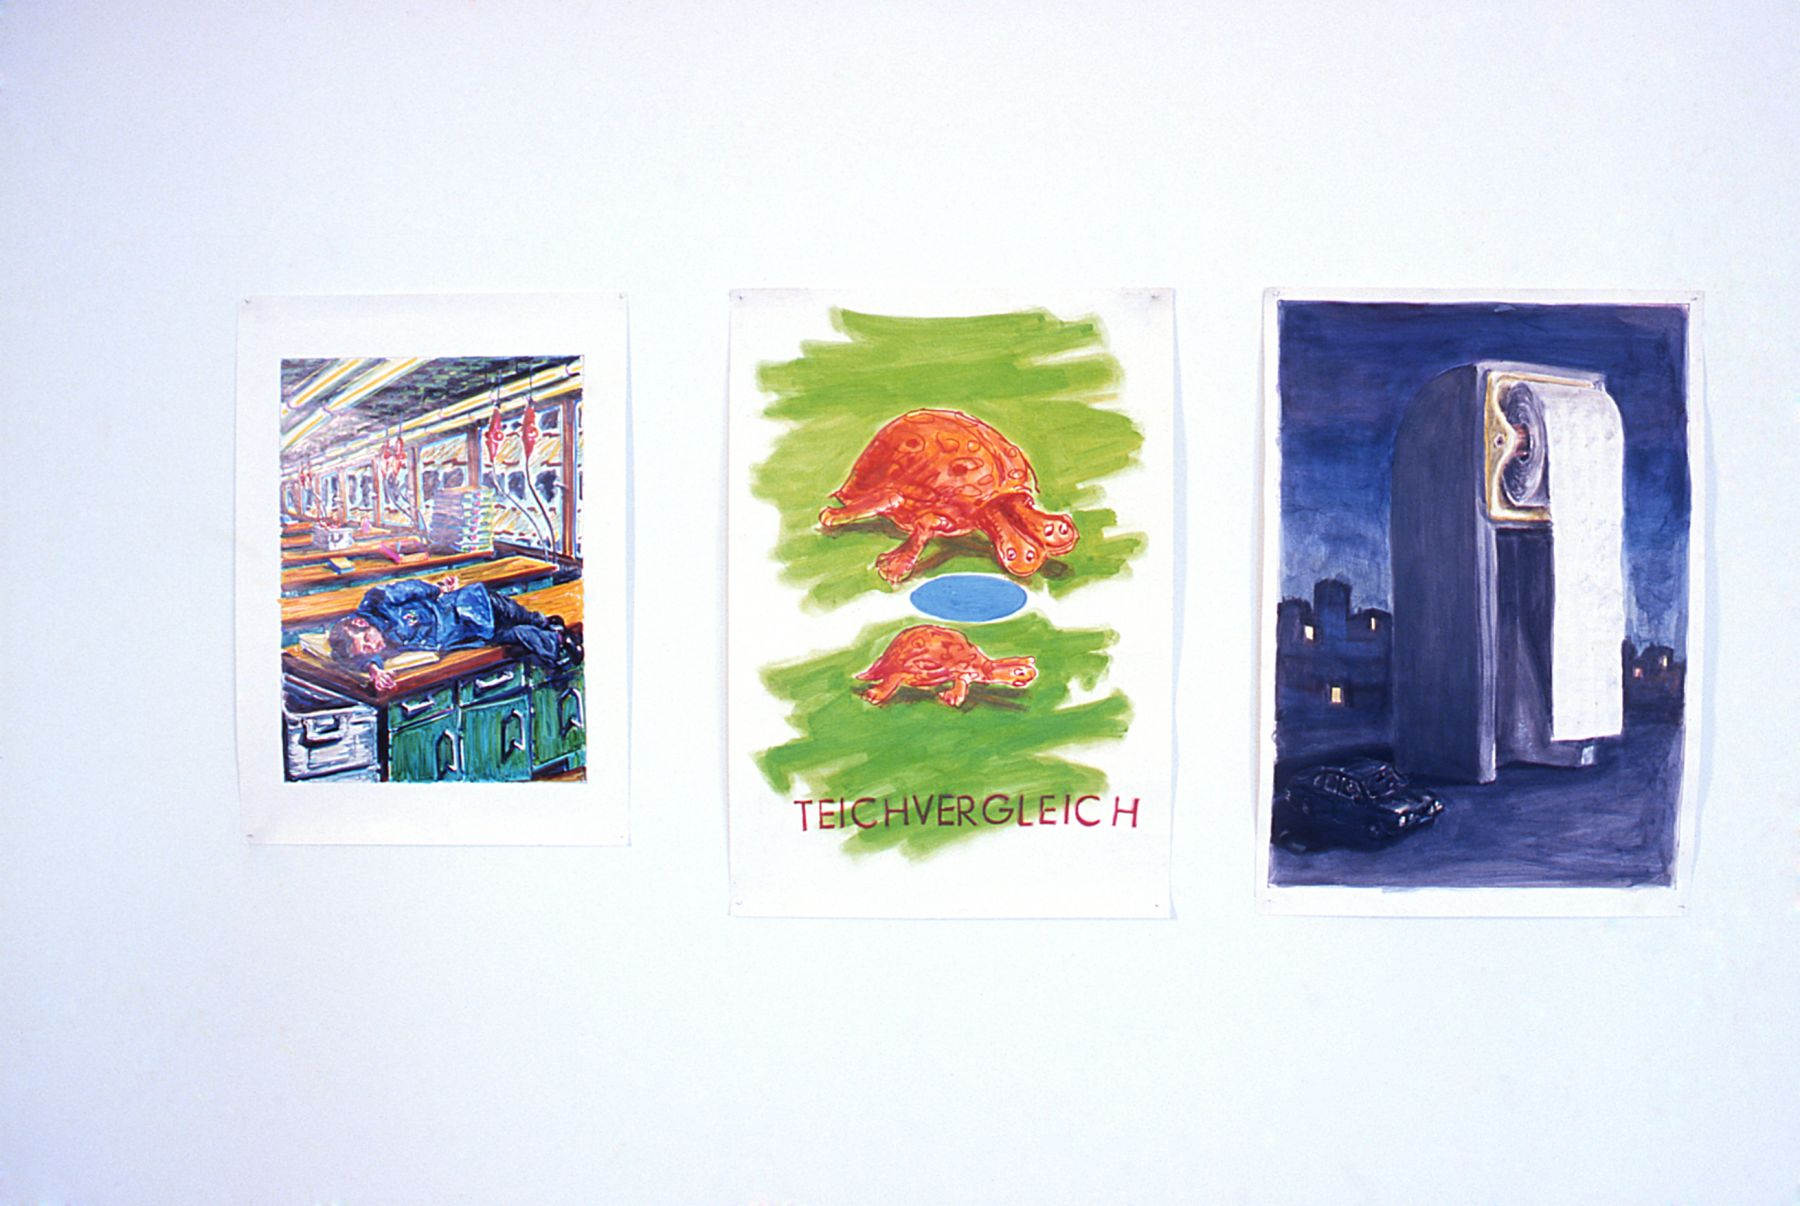 Andres Siekmann, Installation view of Sleeping Worker, Teichvergleich and Box Building, 1977, Felt-tip pen and watercolor on paper, 33 3/4 x 24 3/4 inches; 39 1/4 x 26 1/4 inches; 39 1/4 x 26 3/4 inches